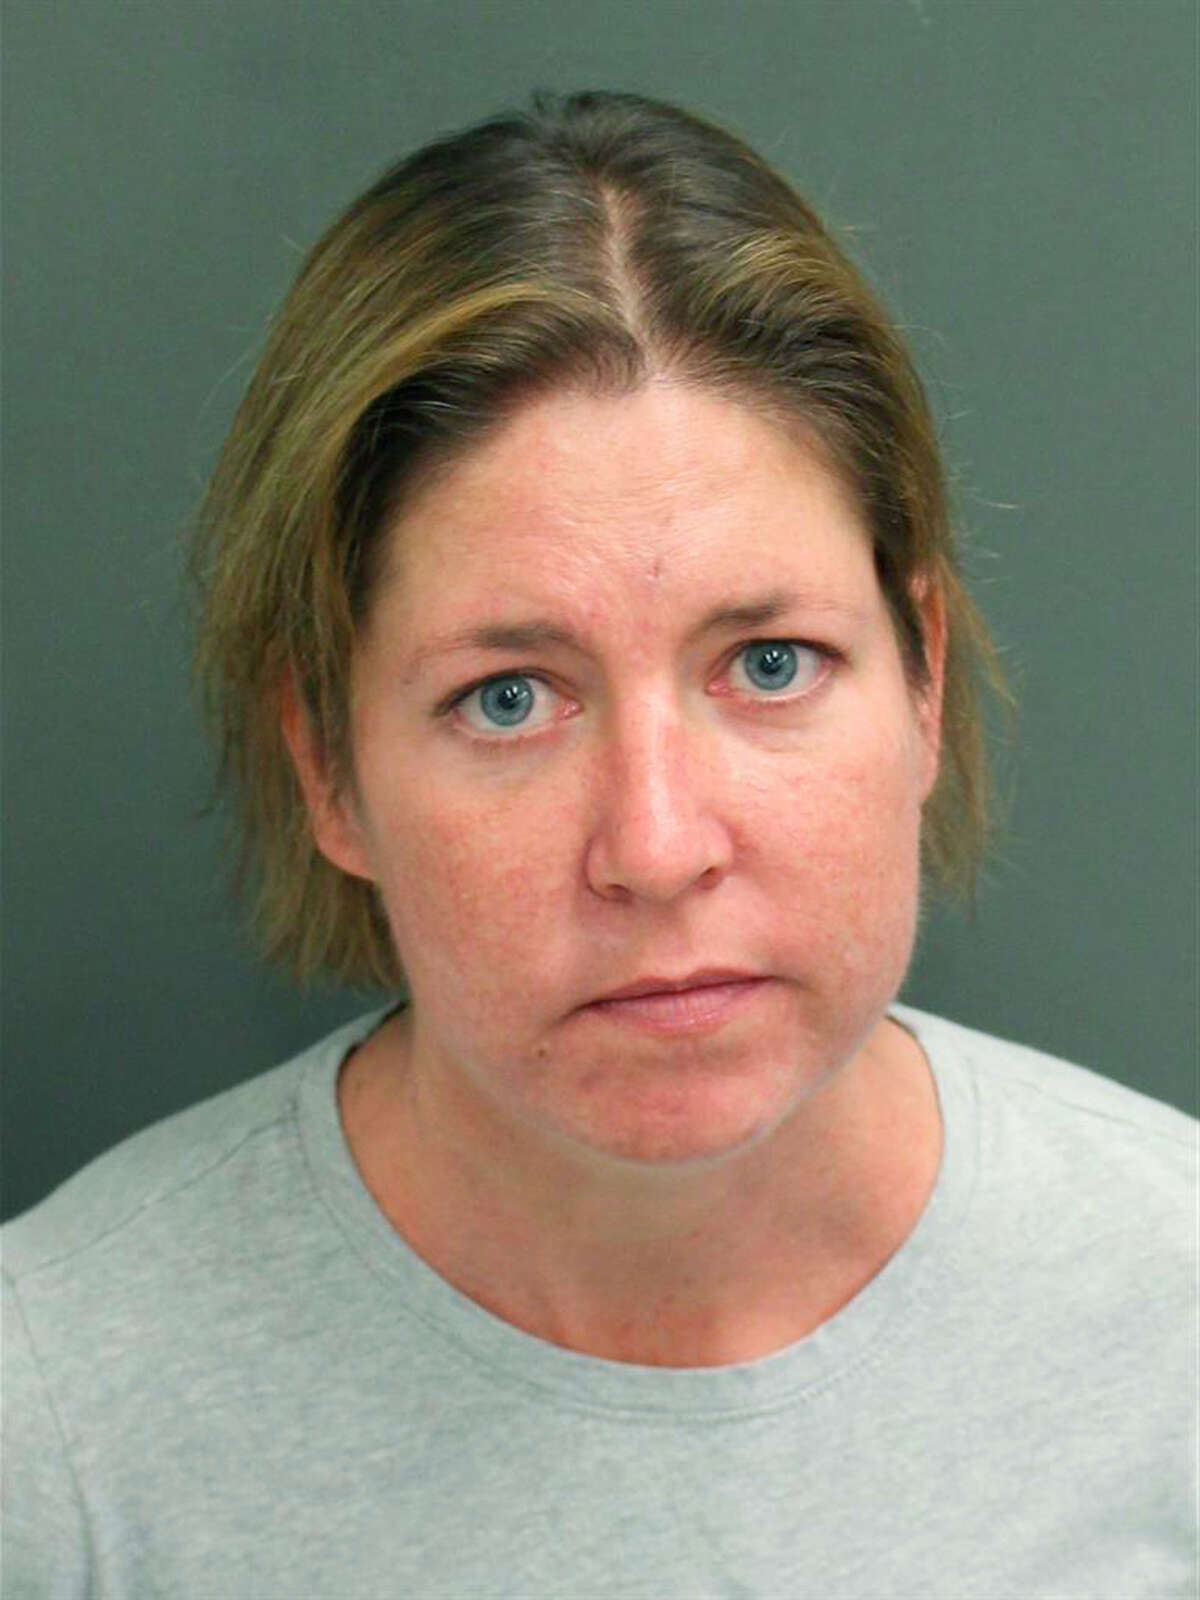 This Monday, Feb. 24, 2020 booking photo from the Orange County Sheriffa€™s Office shows Sarah Boone. Boone is accused of zipping her boyfriend into a suitcase, recording his repeated cries for help and leaving him locked inside until he died, according to sheriff's office documents. (Orange County Sheriffa€™s Office via AP)